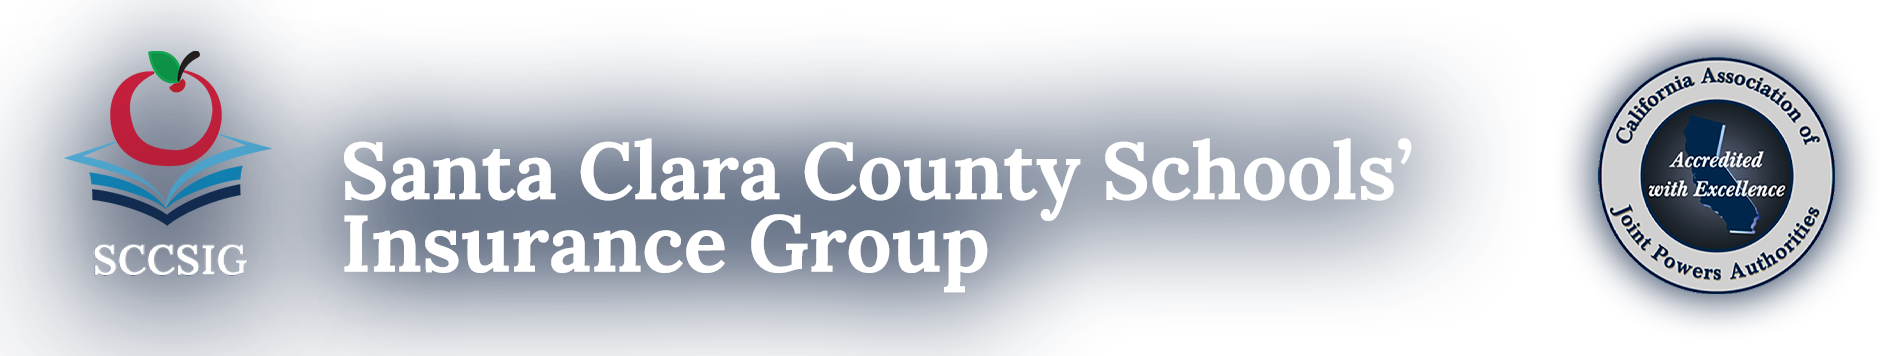 Santa Clara County Schools' Insurance Group